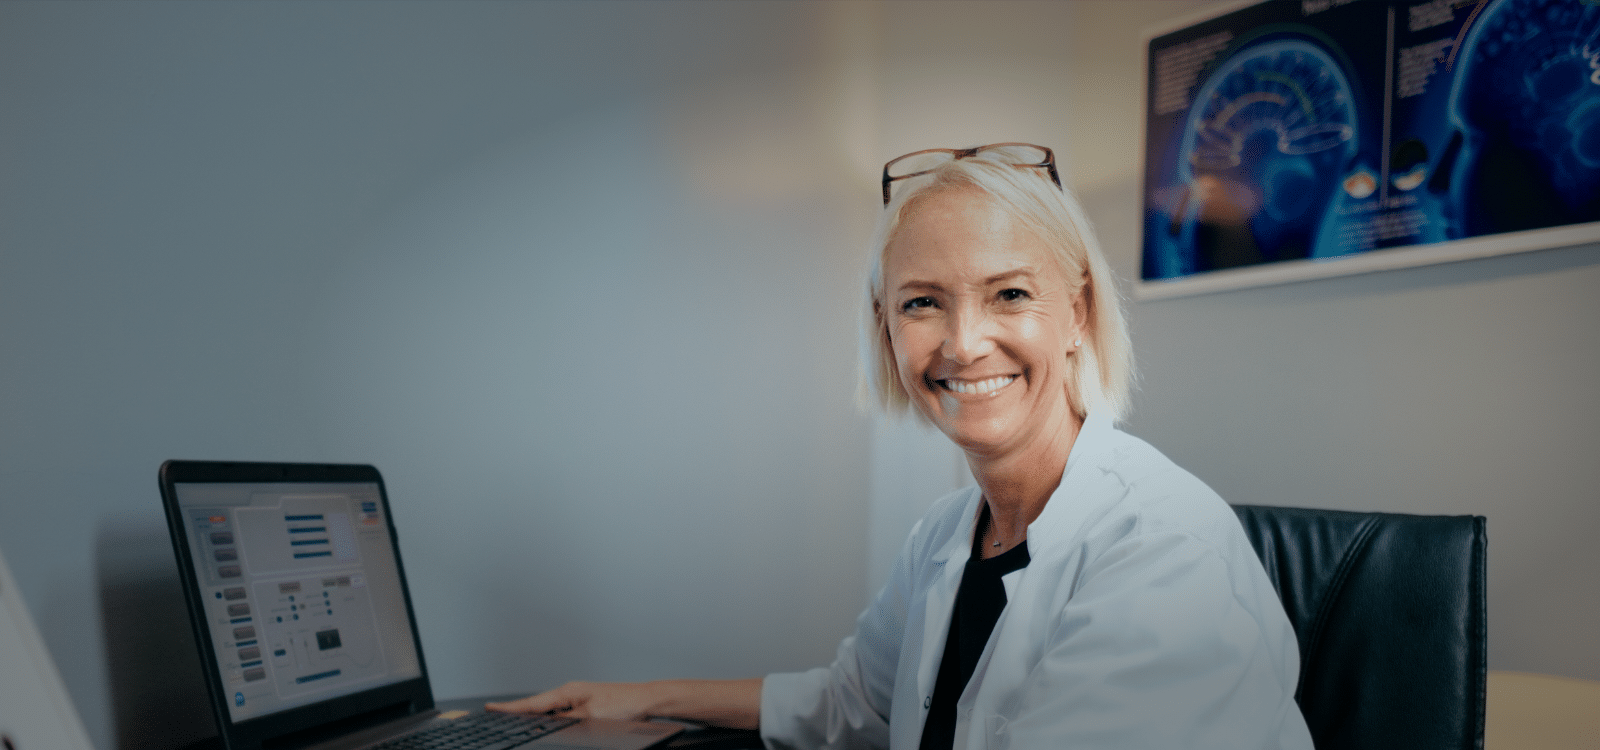 smiling woman doctor looking at patient file on a laptop